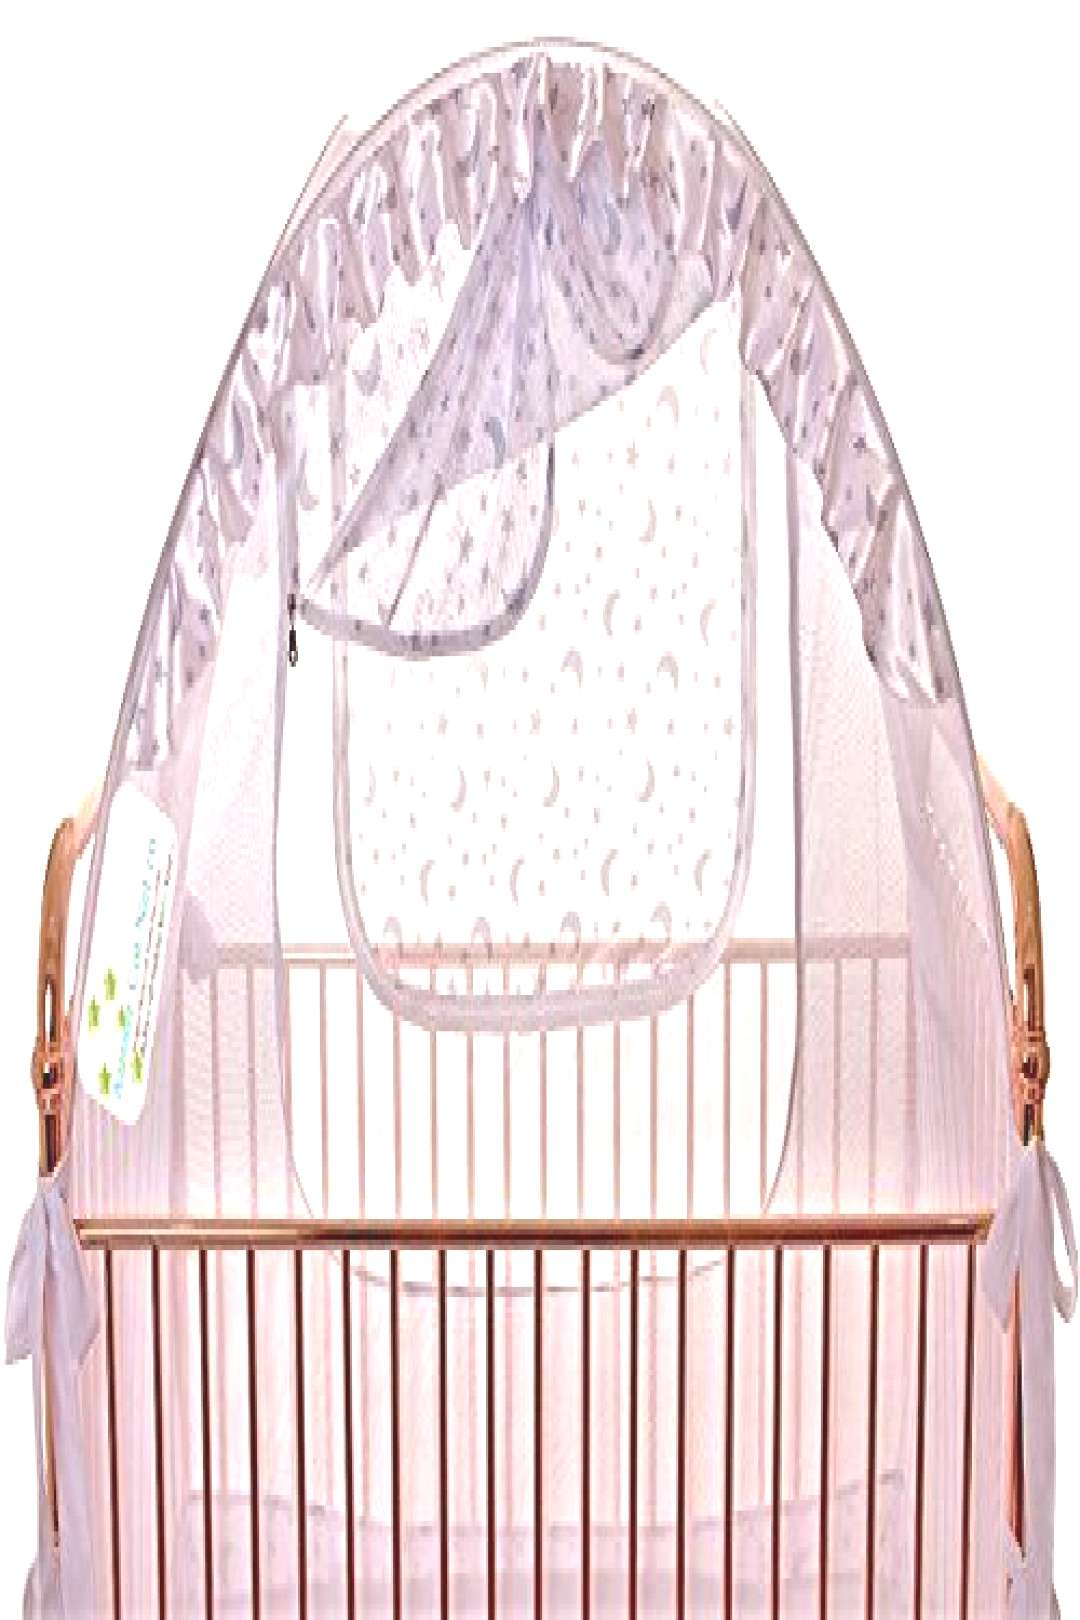 Best Baby Crib Safety Net Tent – Tried and Tested – Safe and Secure – Prov...#baby